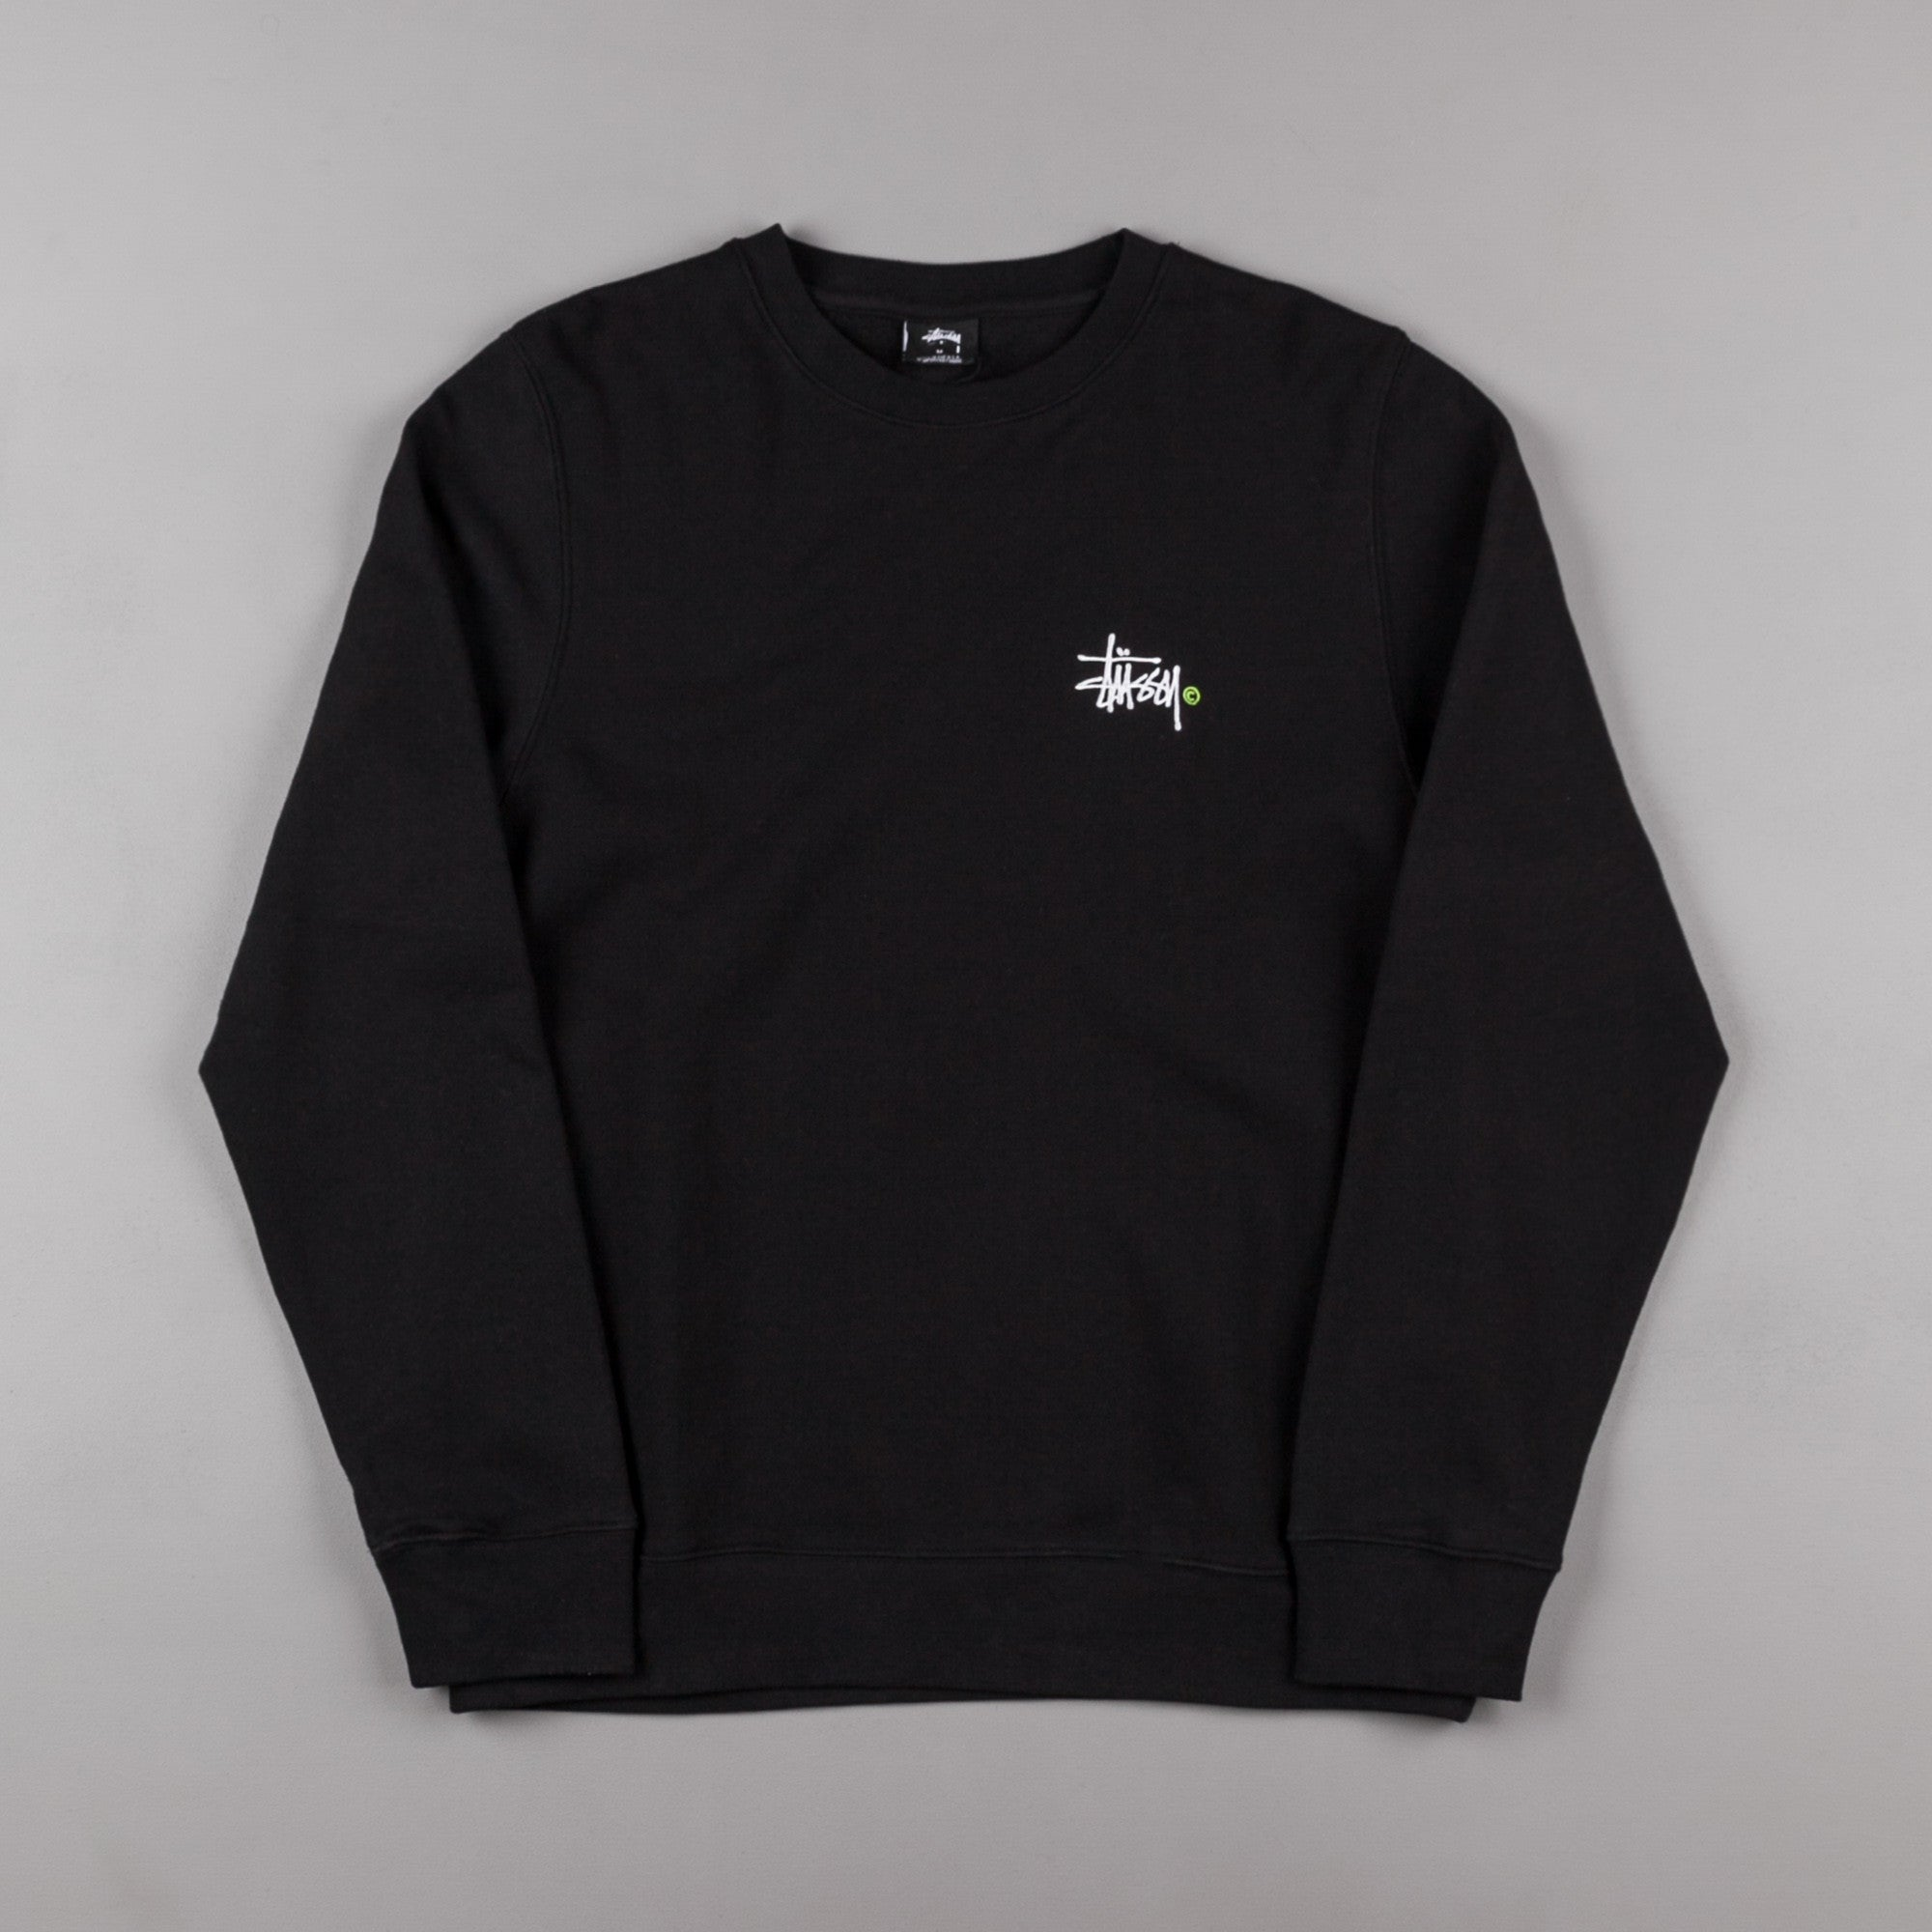 693531d3de Stussy Basic Logo Crewneck Sweatshirt - Black   Green